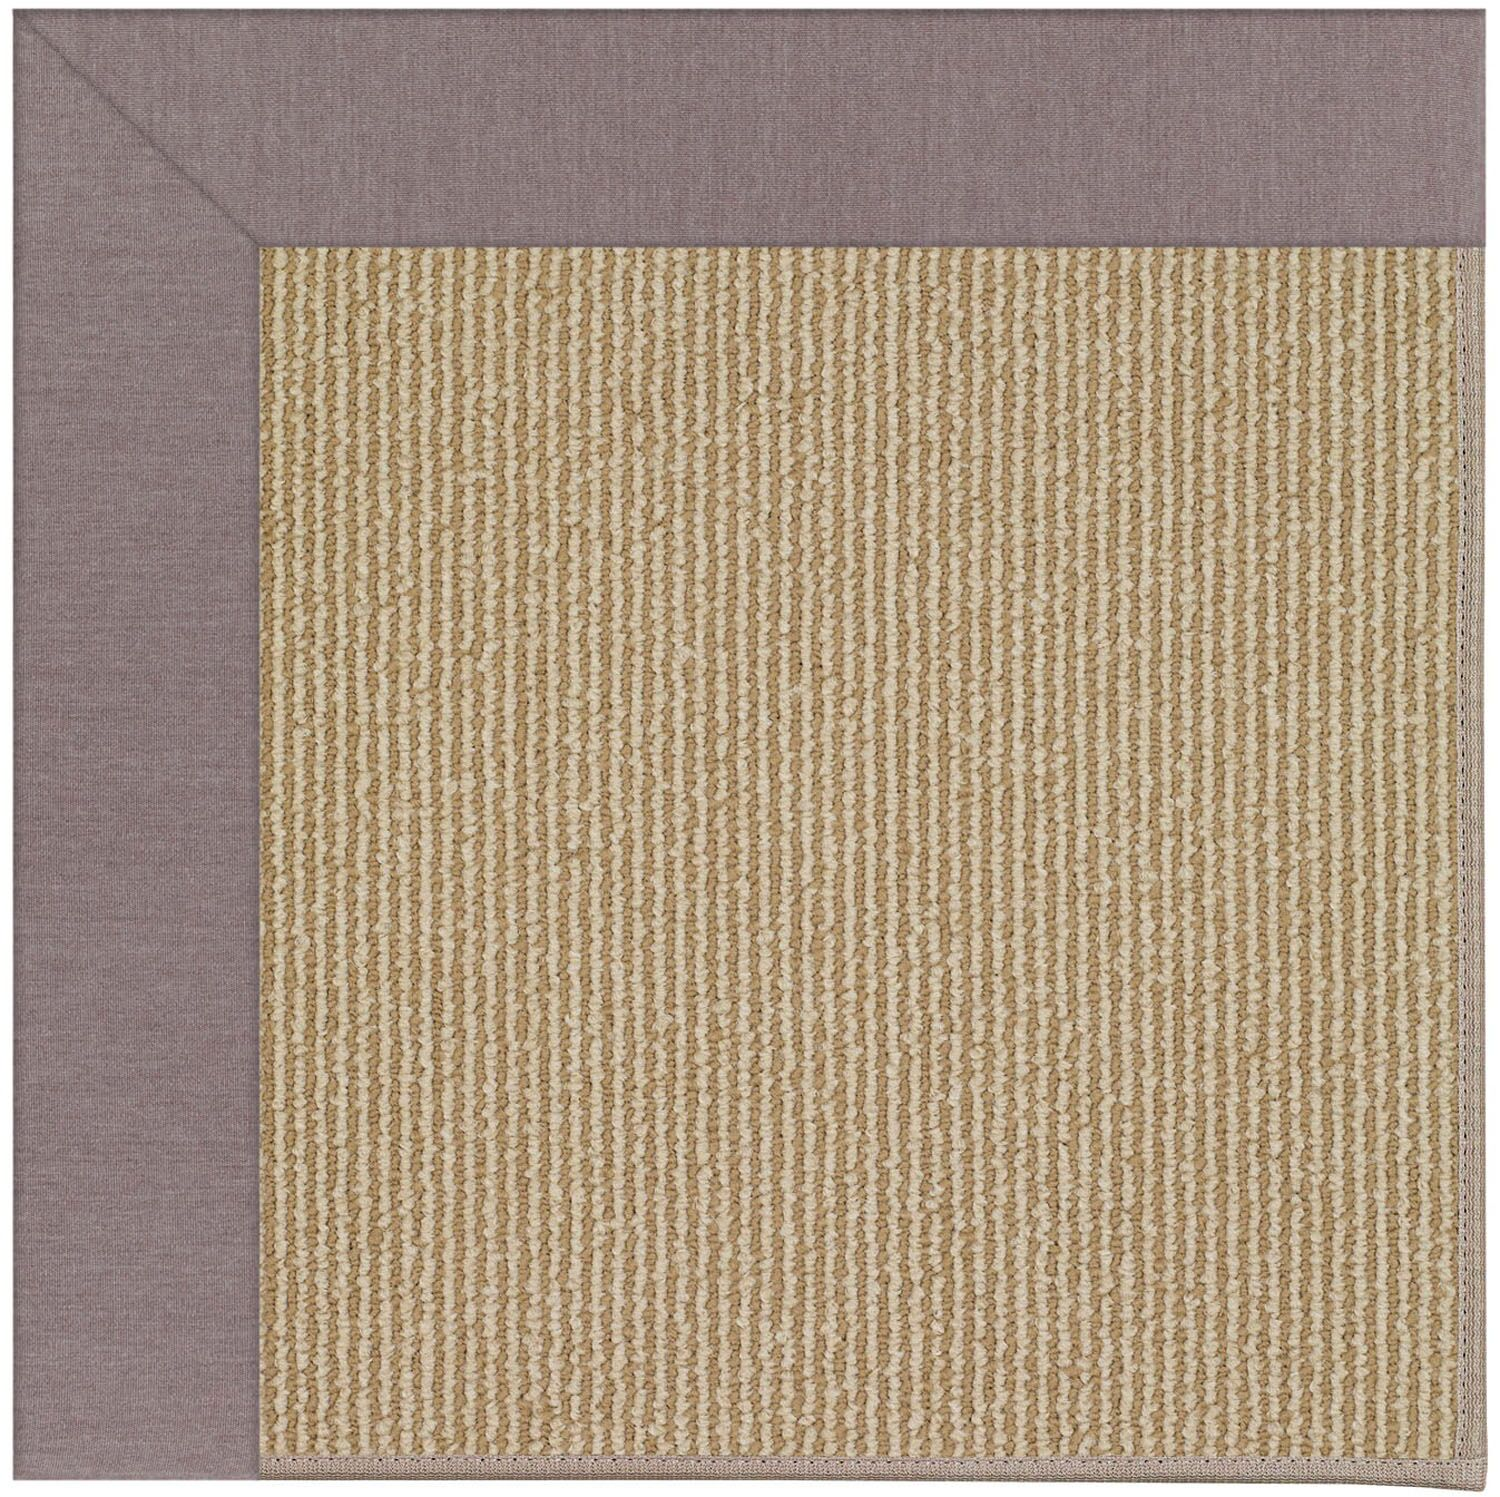 Lisle Machine Tufted Evening Indoor/Outdoor Area Rug Rug Size: Square 10'